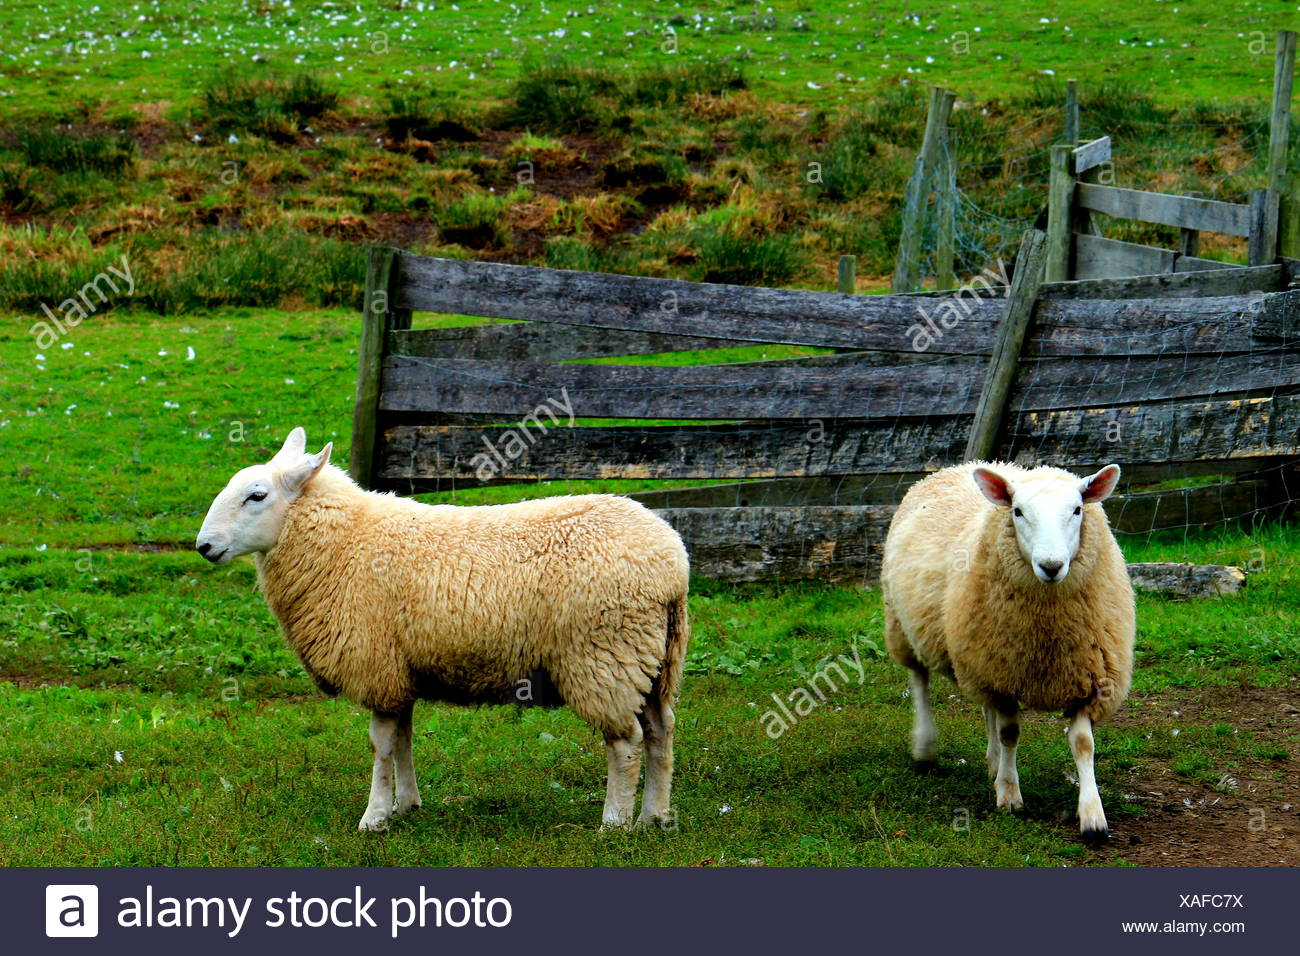 Sheep Standing By Fence On Grassy Field - Stock Image